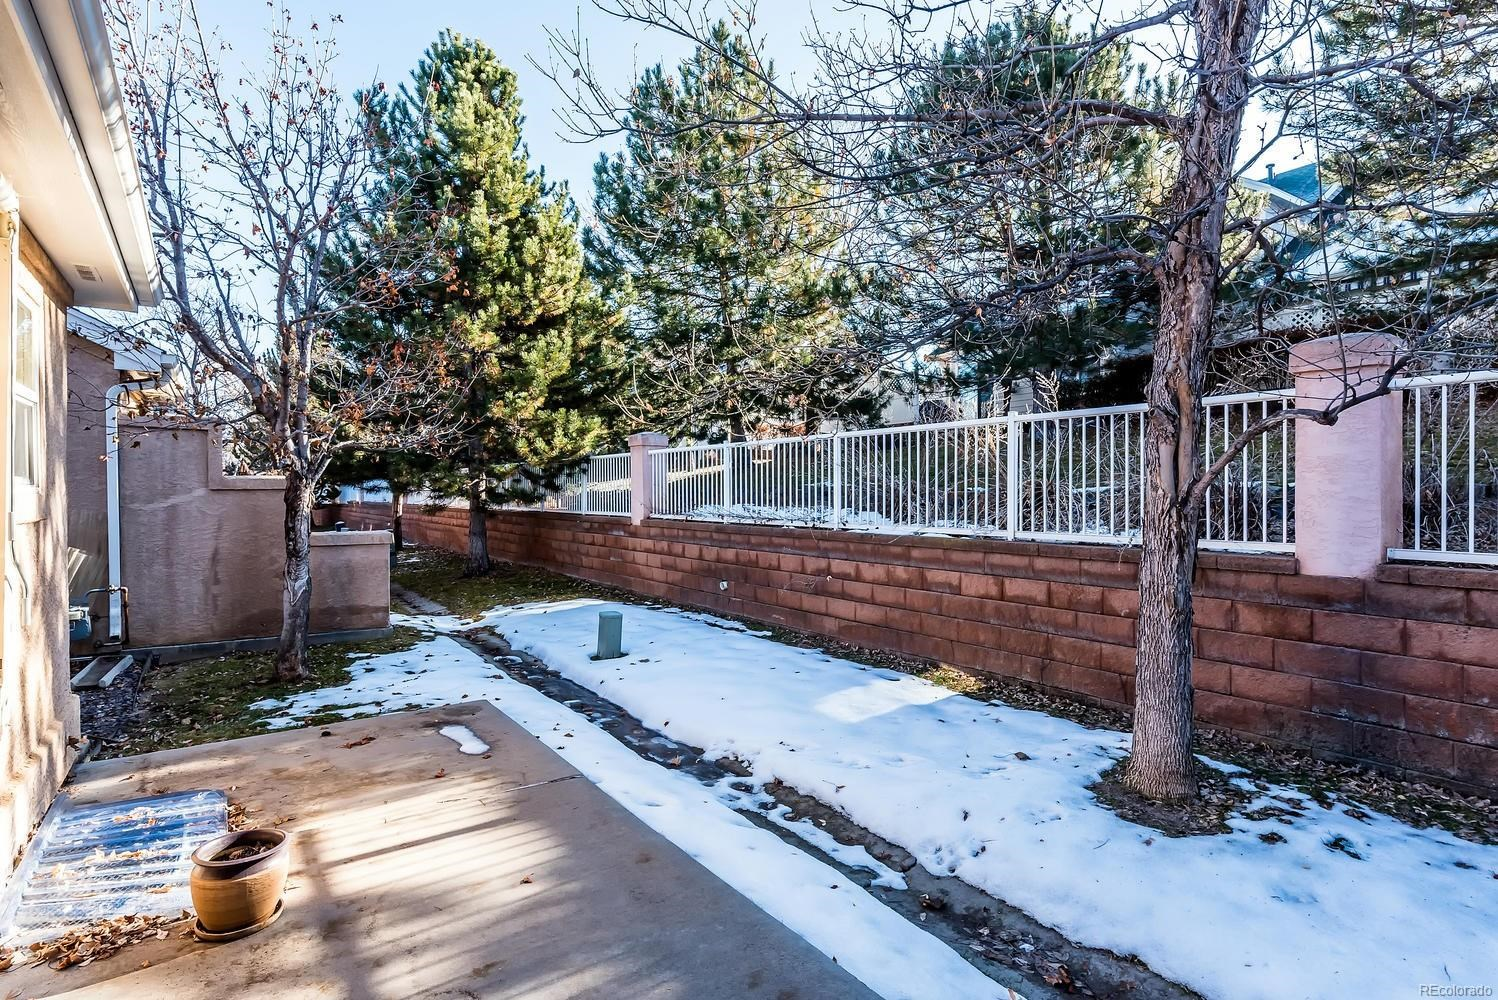 MLS# 6845218 - 25 - 2478 S Scranton Way, Aurora, CO 80014